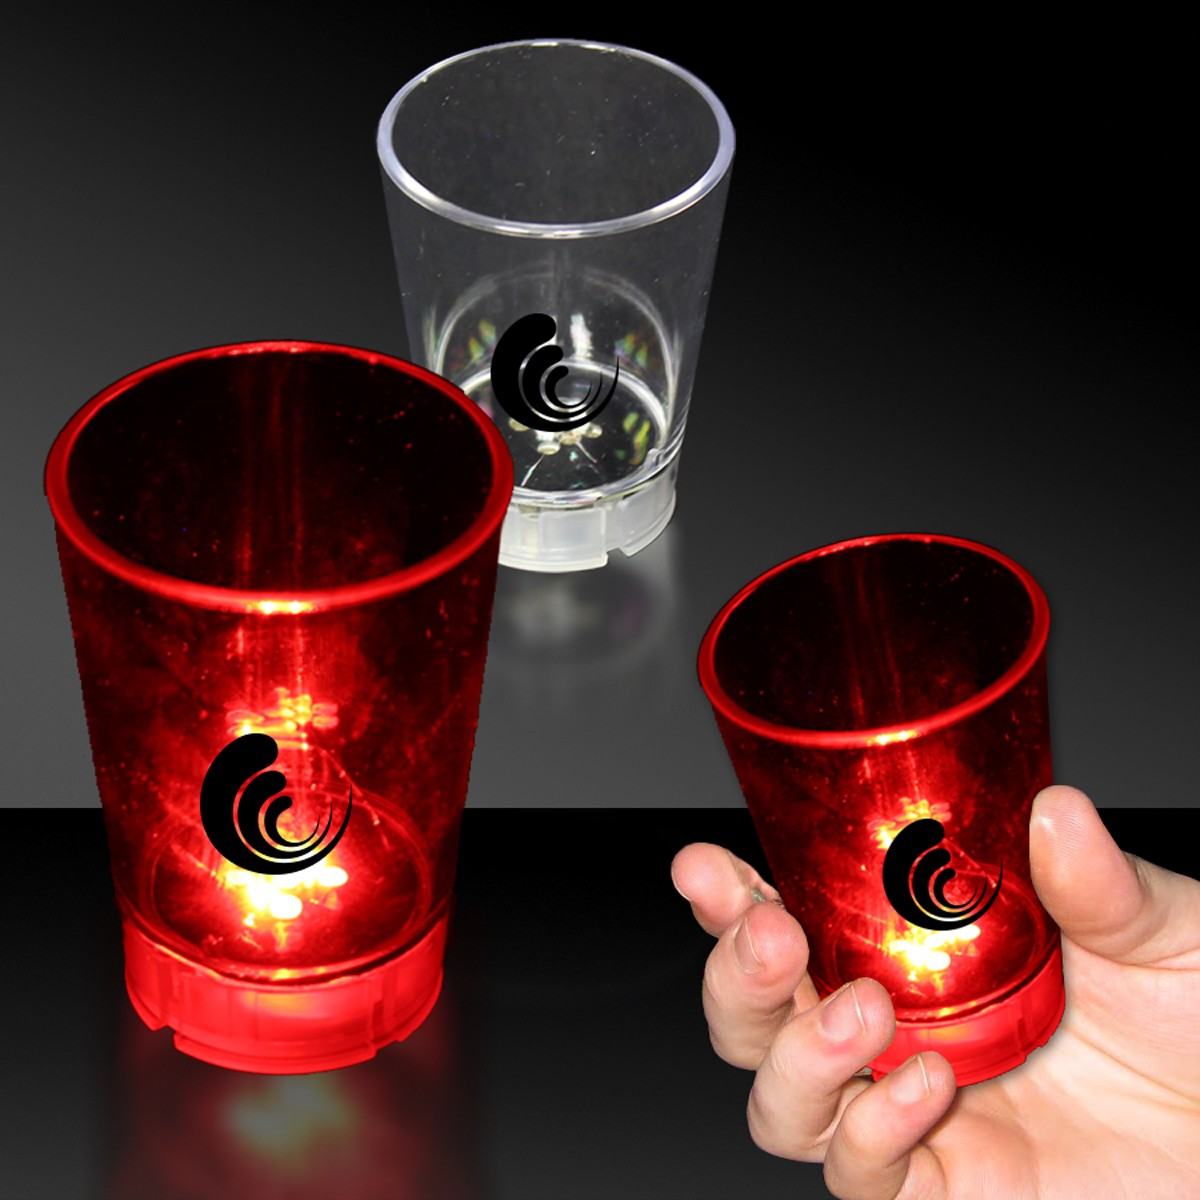 Light Up 2 Ounce Shot Glass with Dice Game